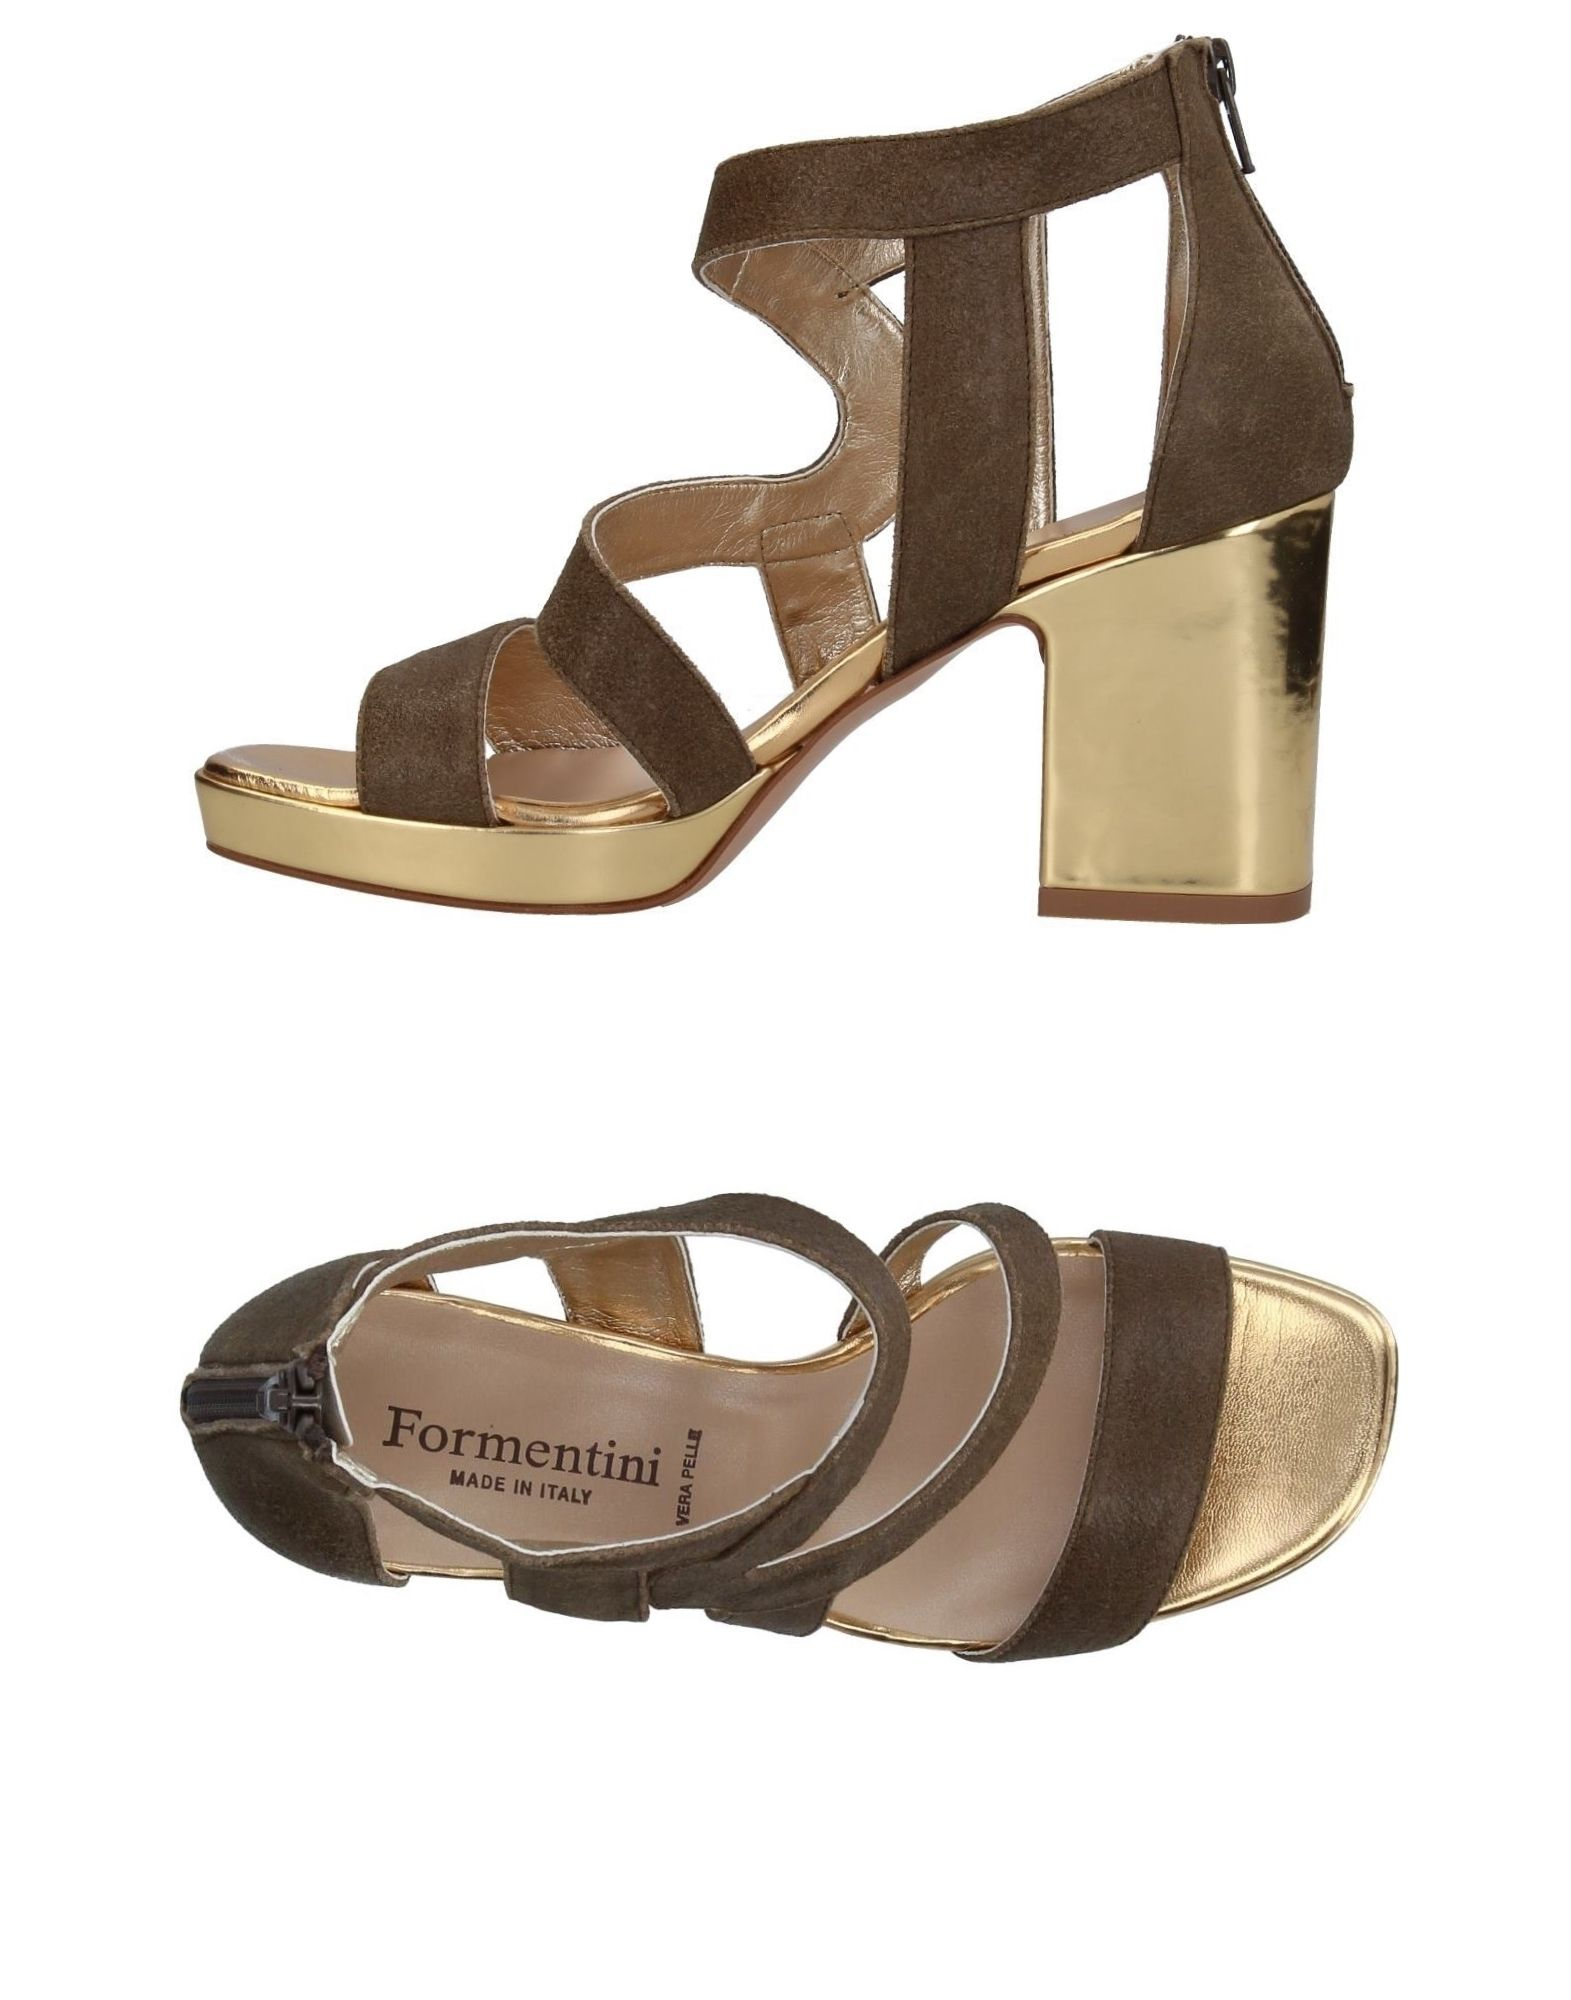 Chaussures - Sandales Formentini ucnHw